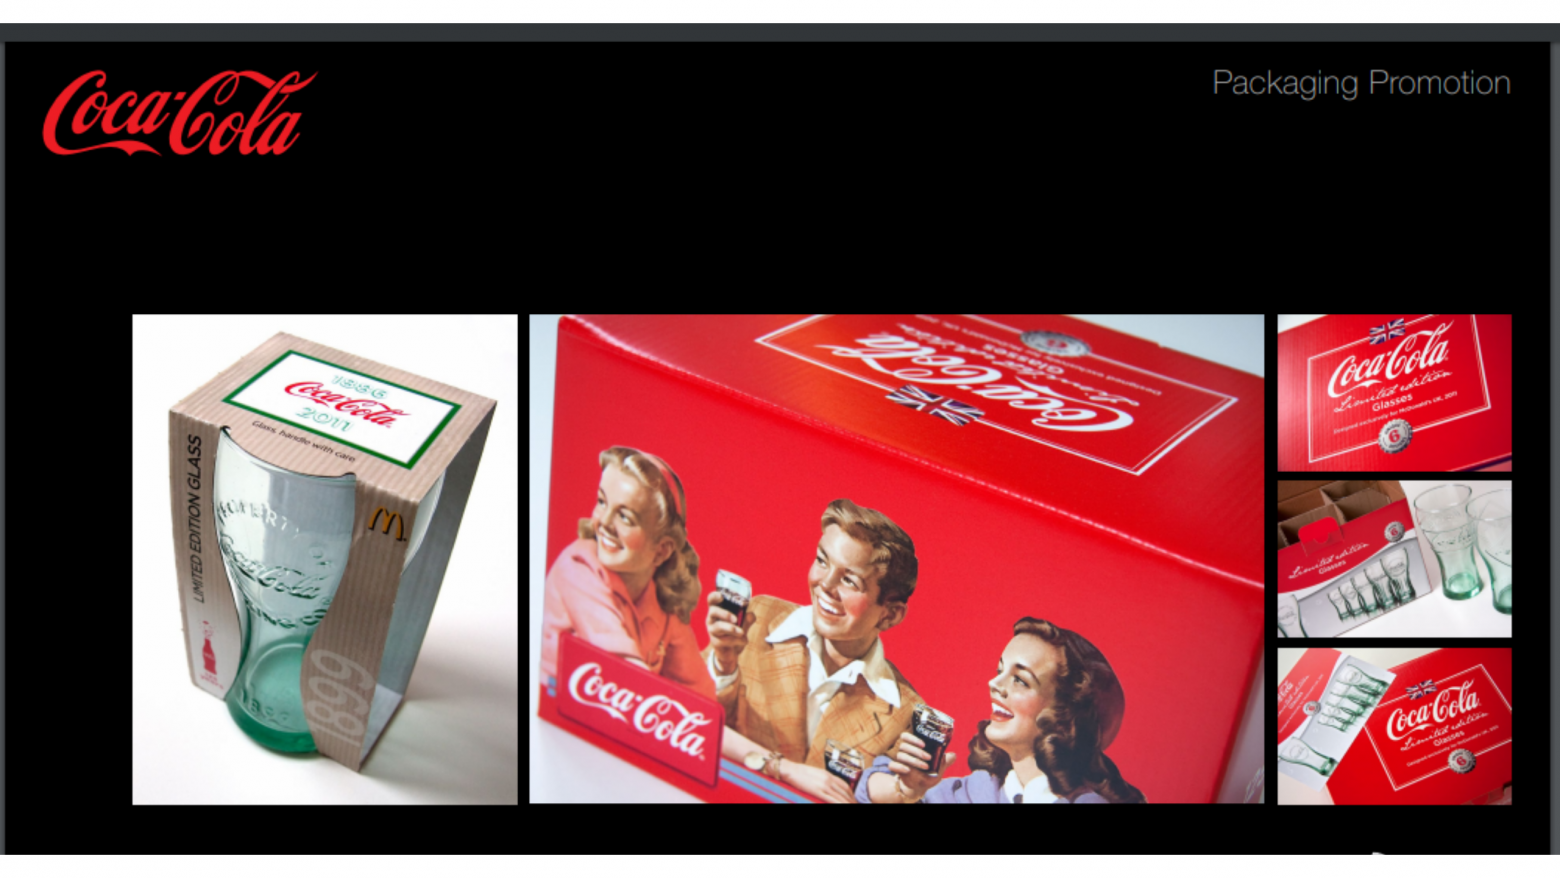 Coca-Cola Packaging